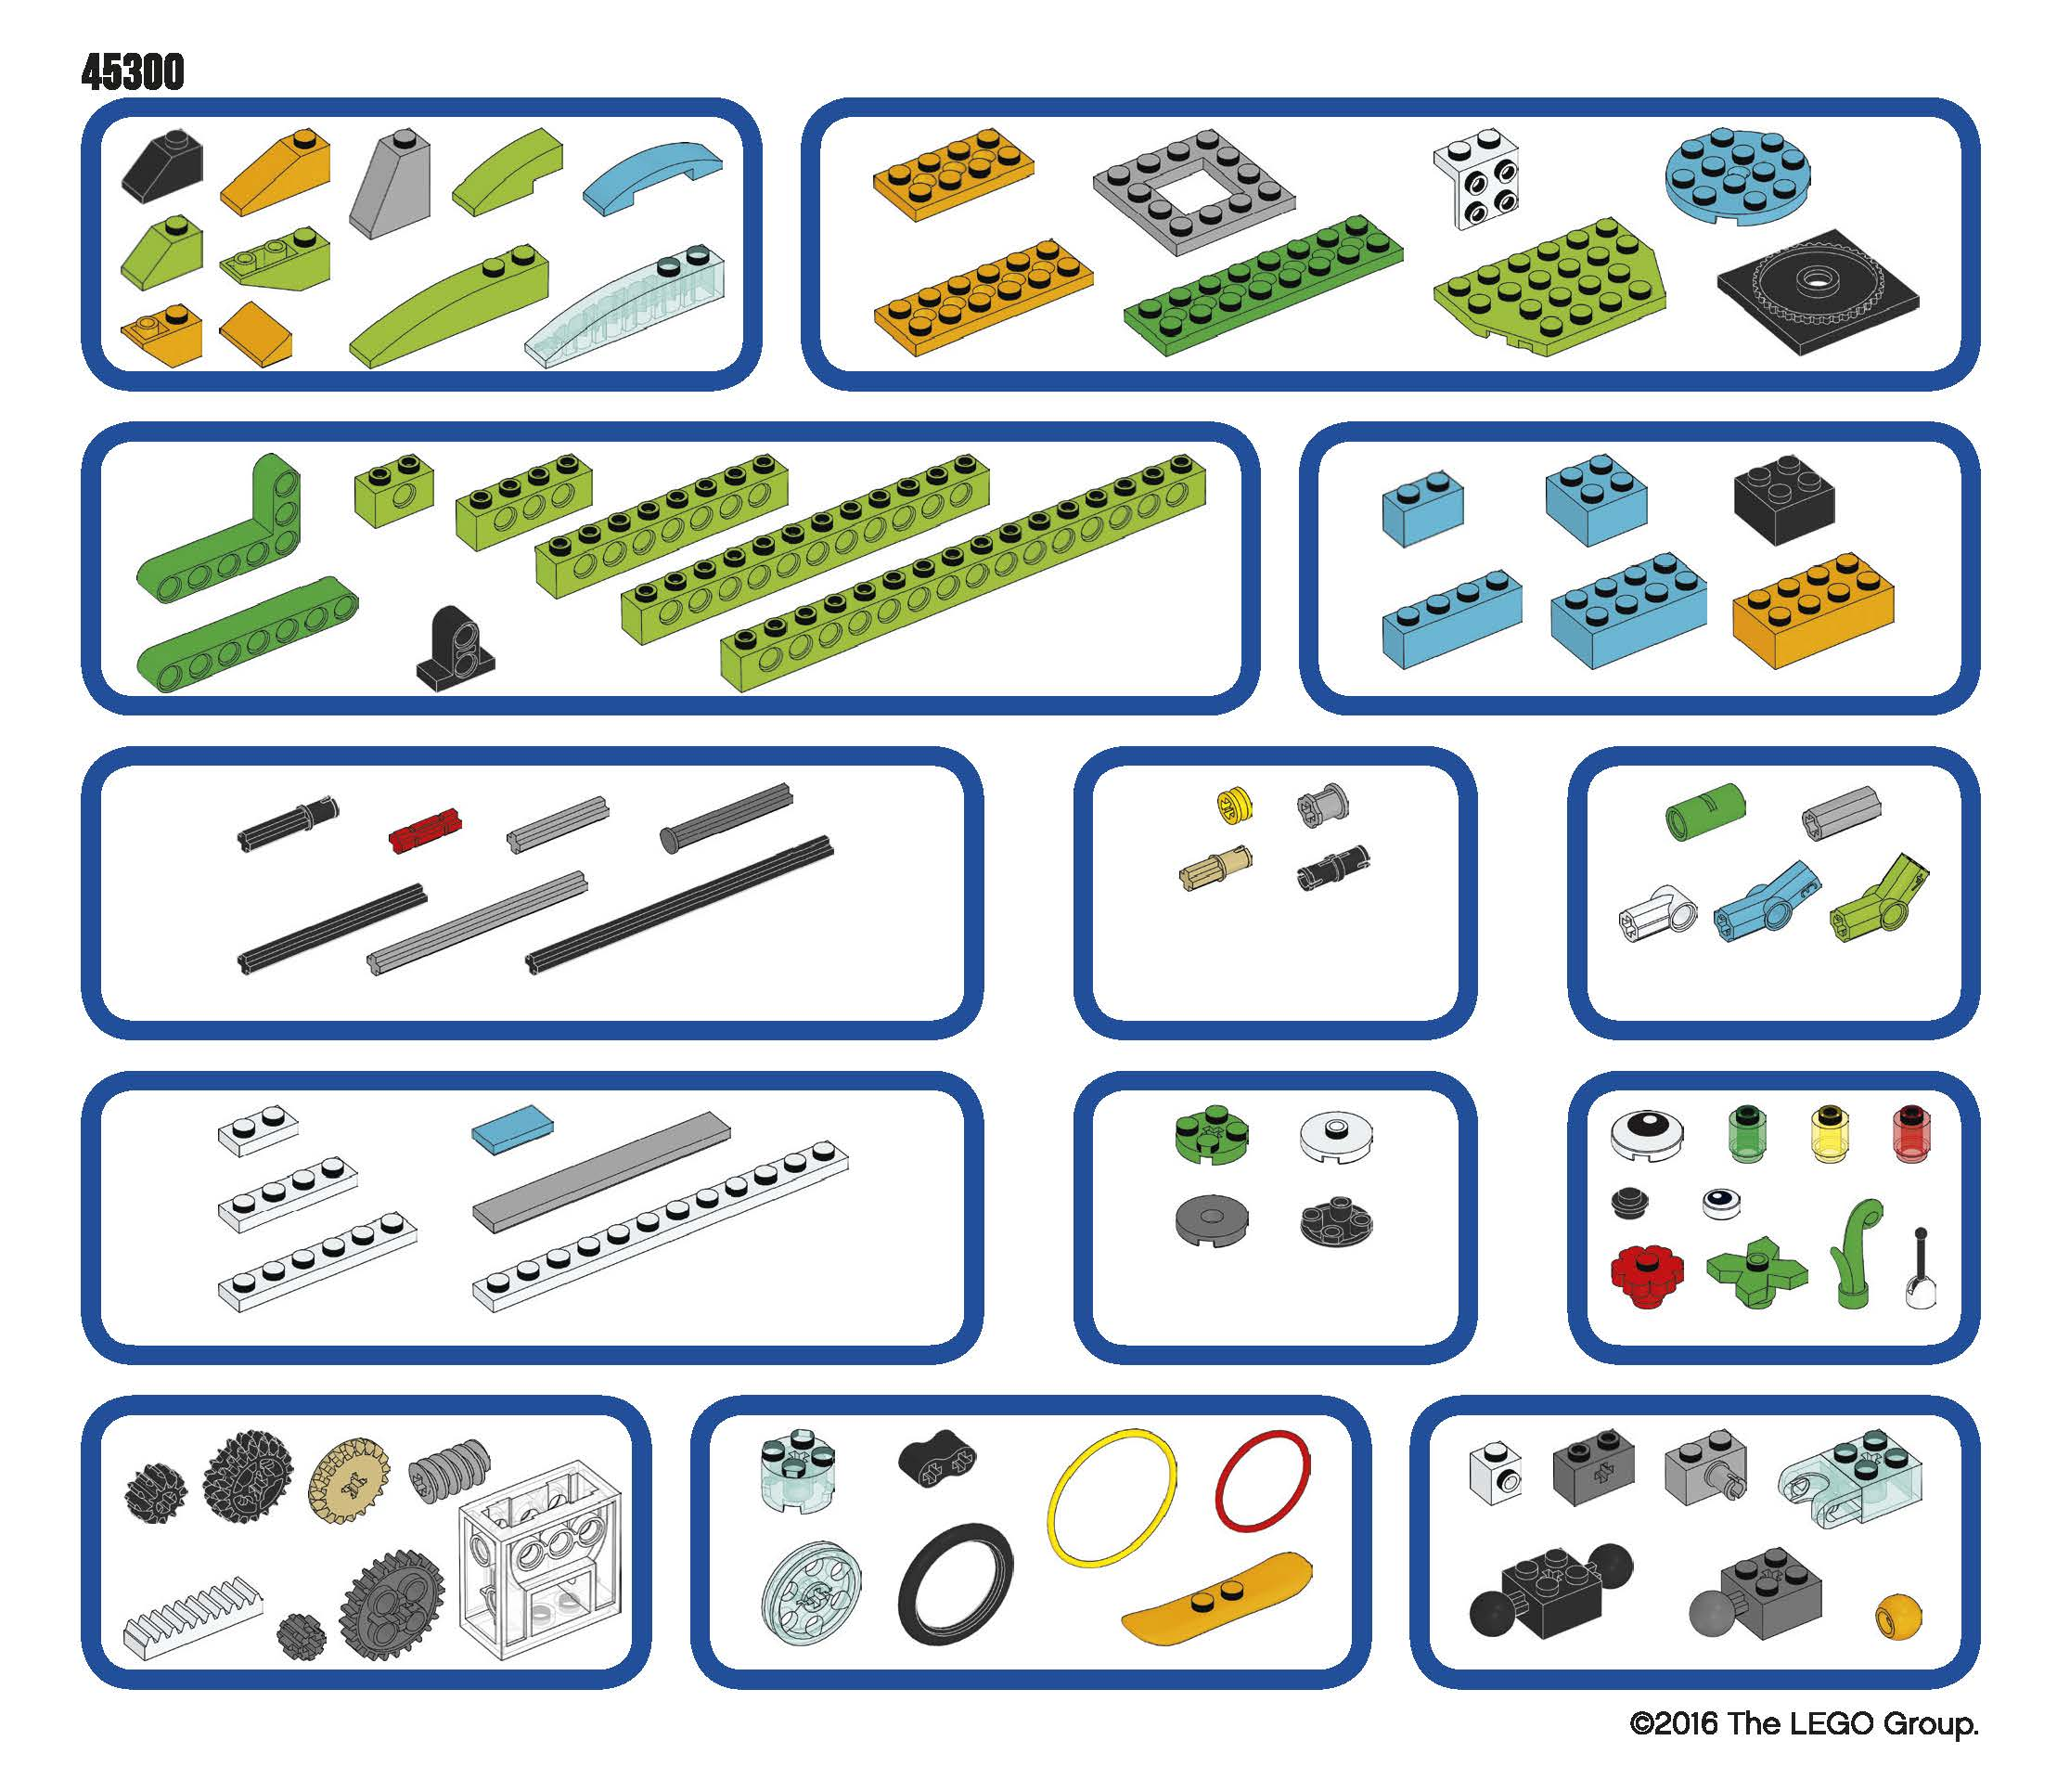 WeDo 2.0 Sorting Tray Sticker Sheet for Print